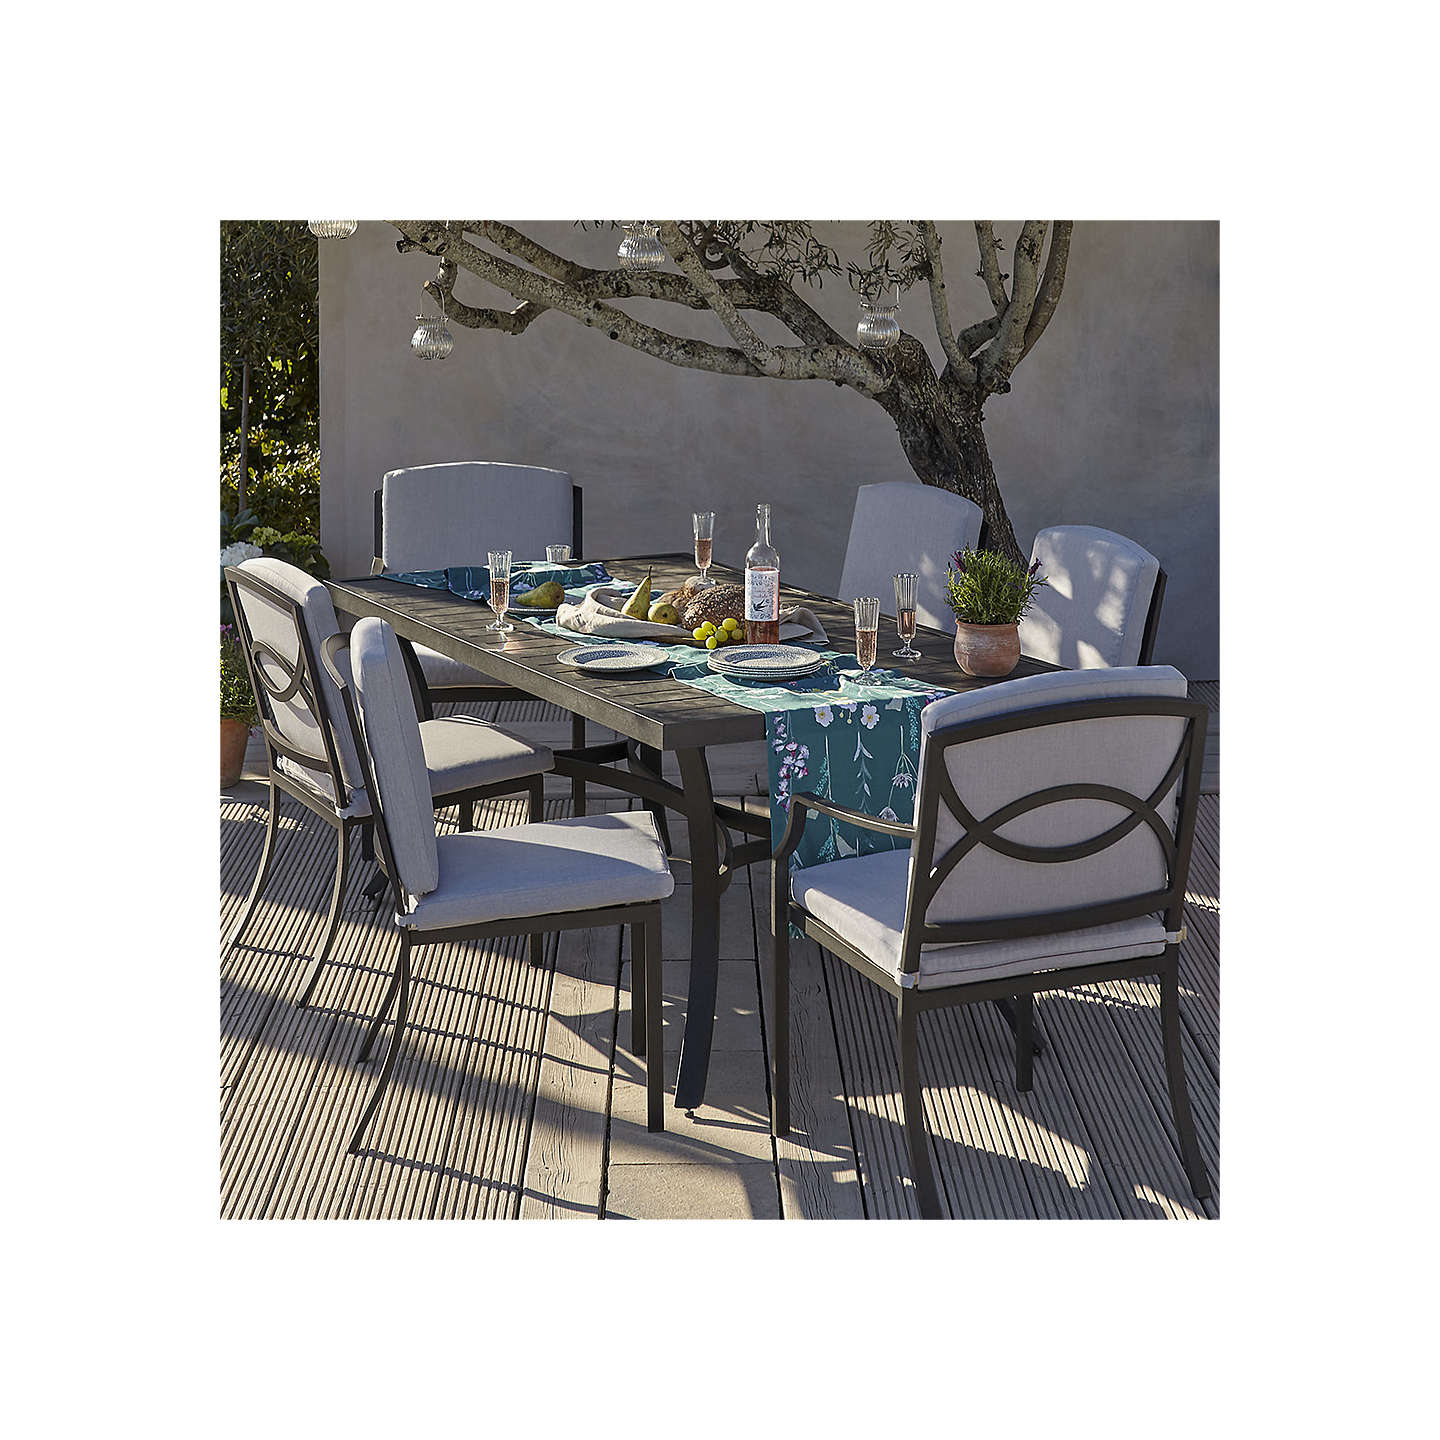 BuyJohn Lewis Marlow Aluminium 6 Seater Dining Table And Chairs Set Black Grey Online